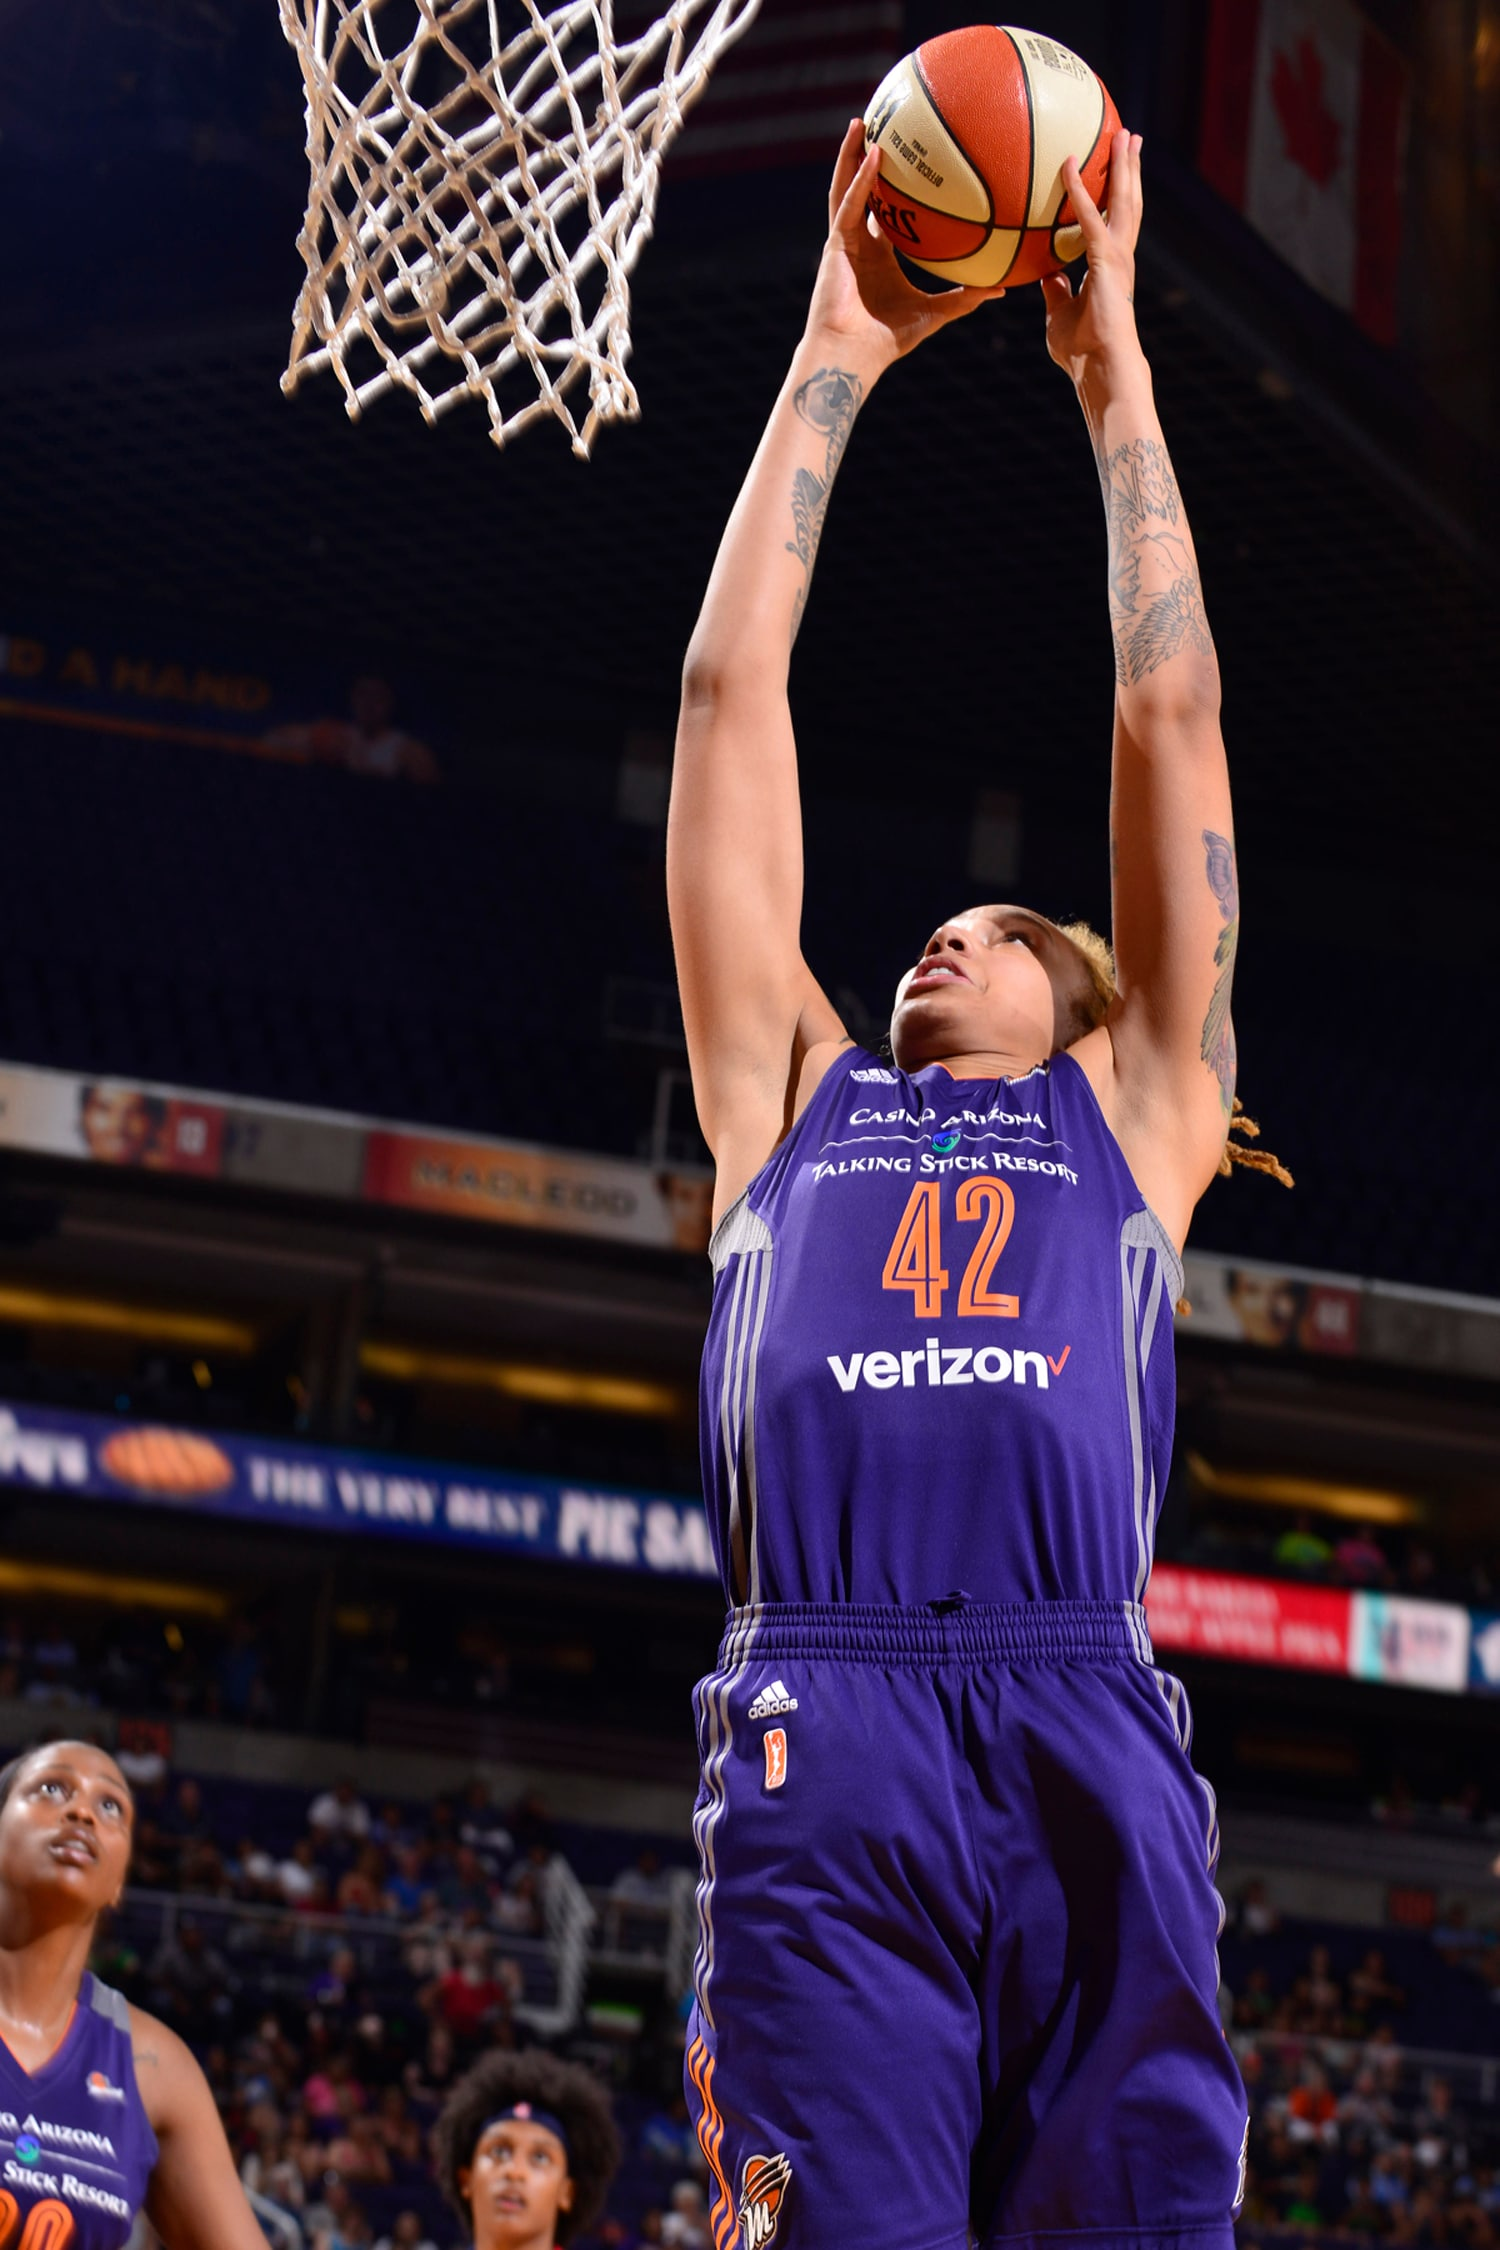 Phoenix Mercury vs Atlana Dream Brittney Griner Slam Dunk